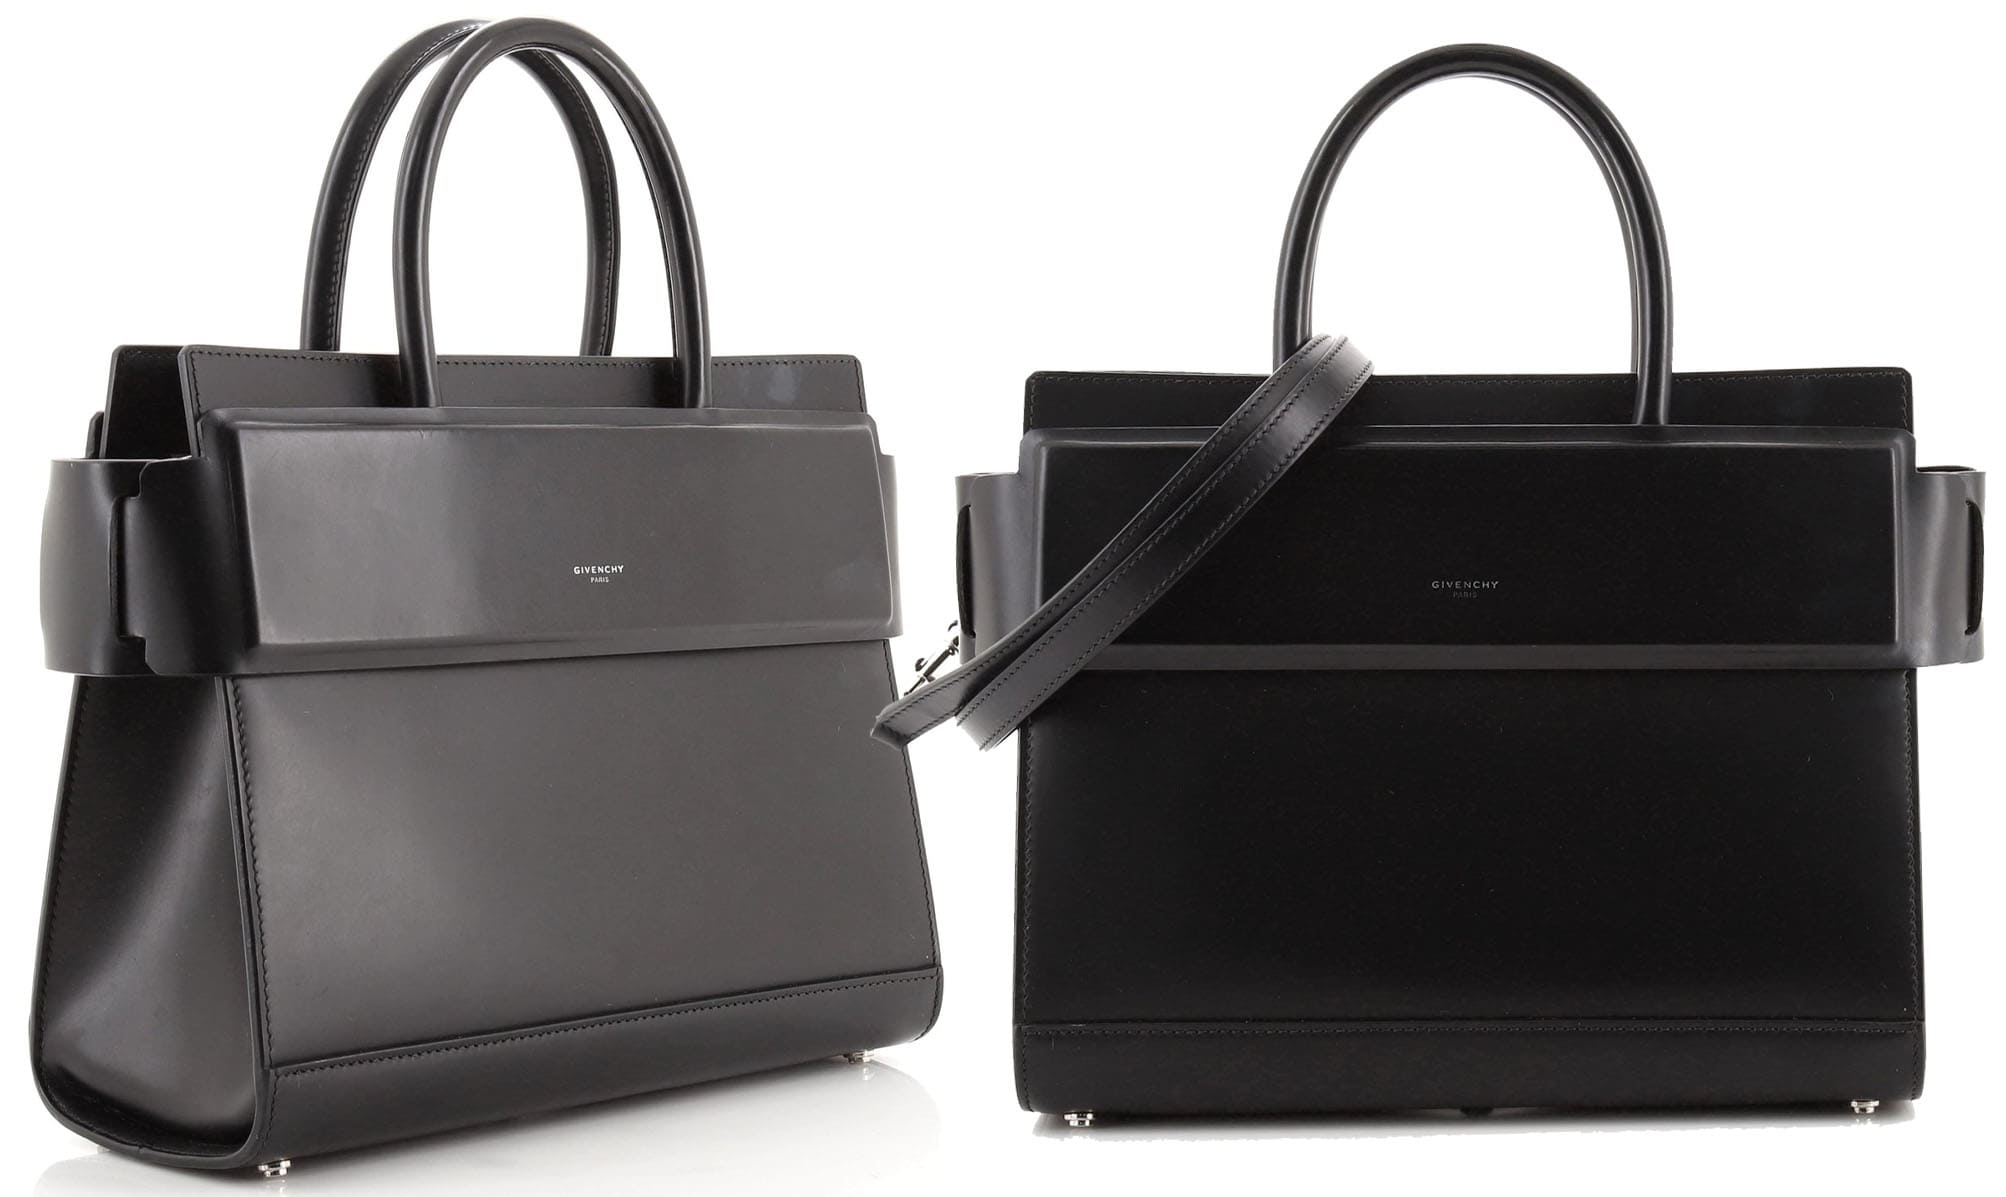 A structured satchel, the Givenchy Horizon features a timeless silhouette with two top handles and a minimalist Givenchy logo